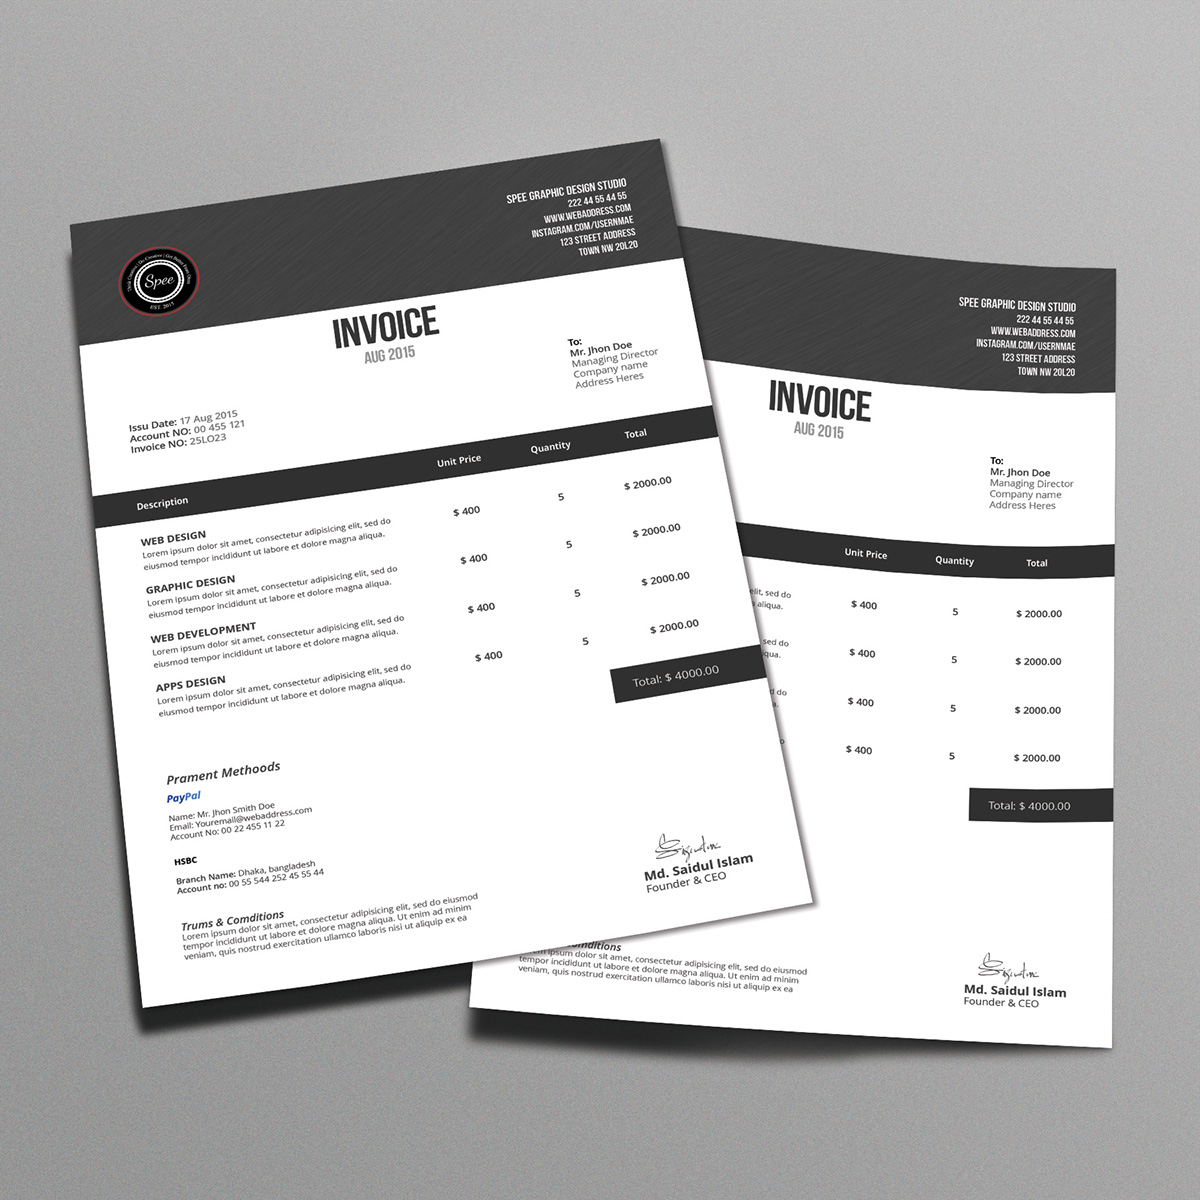 Minimalist Invoice Template Design On Behance - Invoice template design